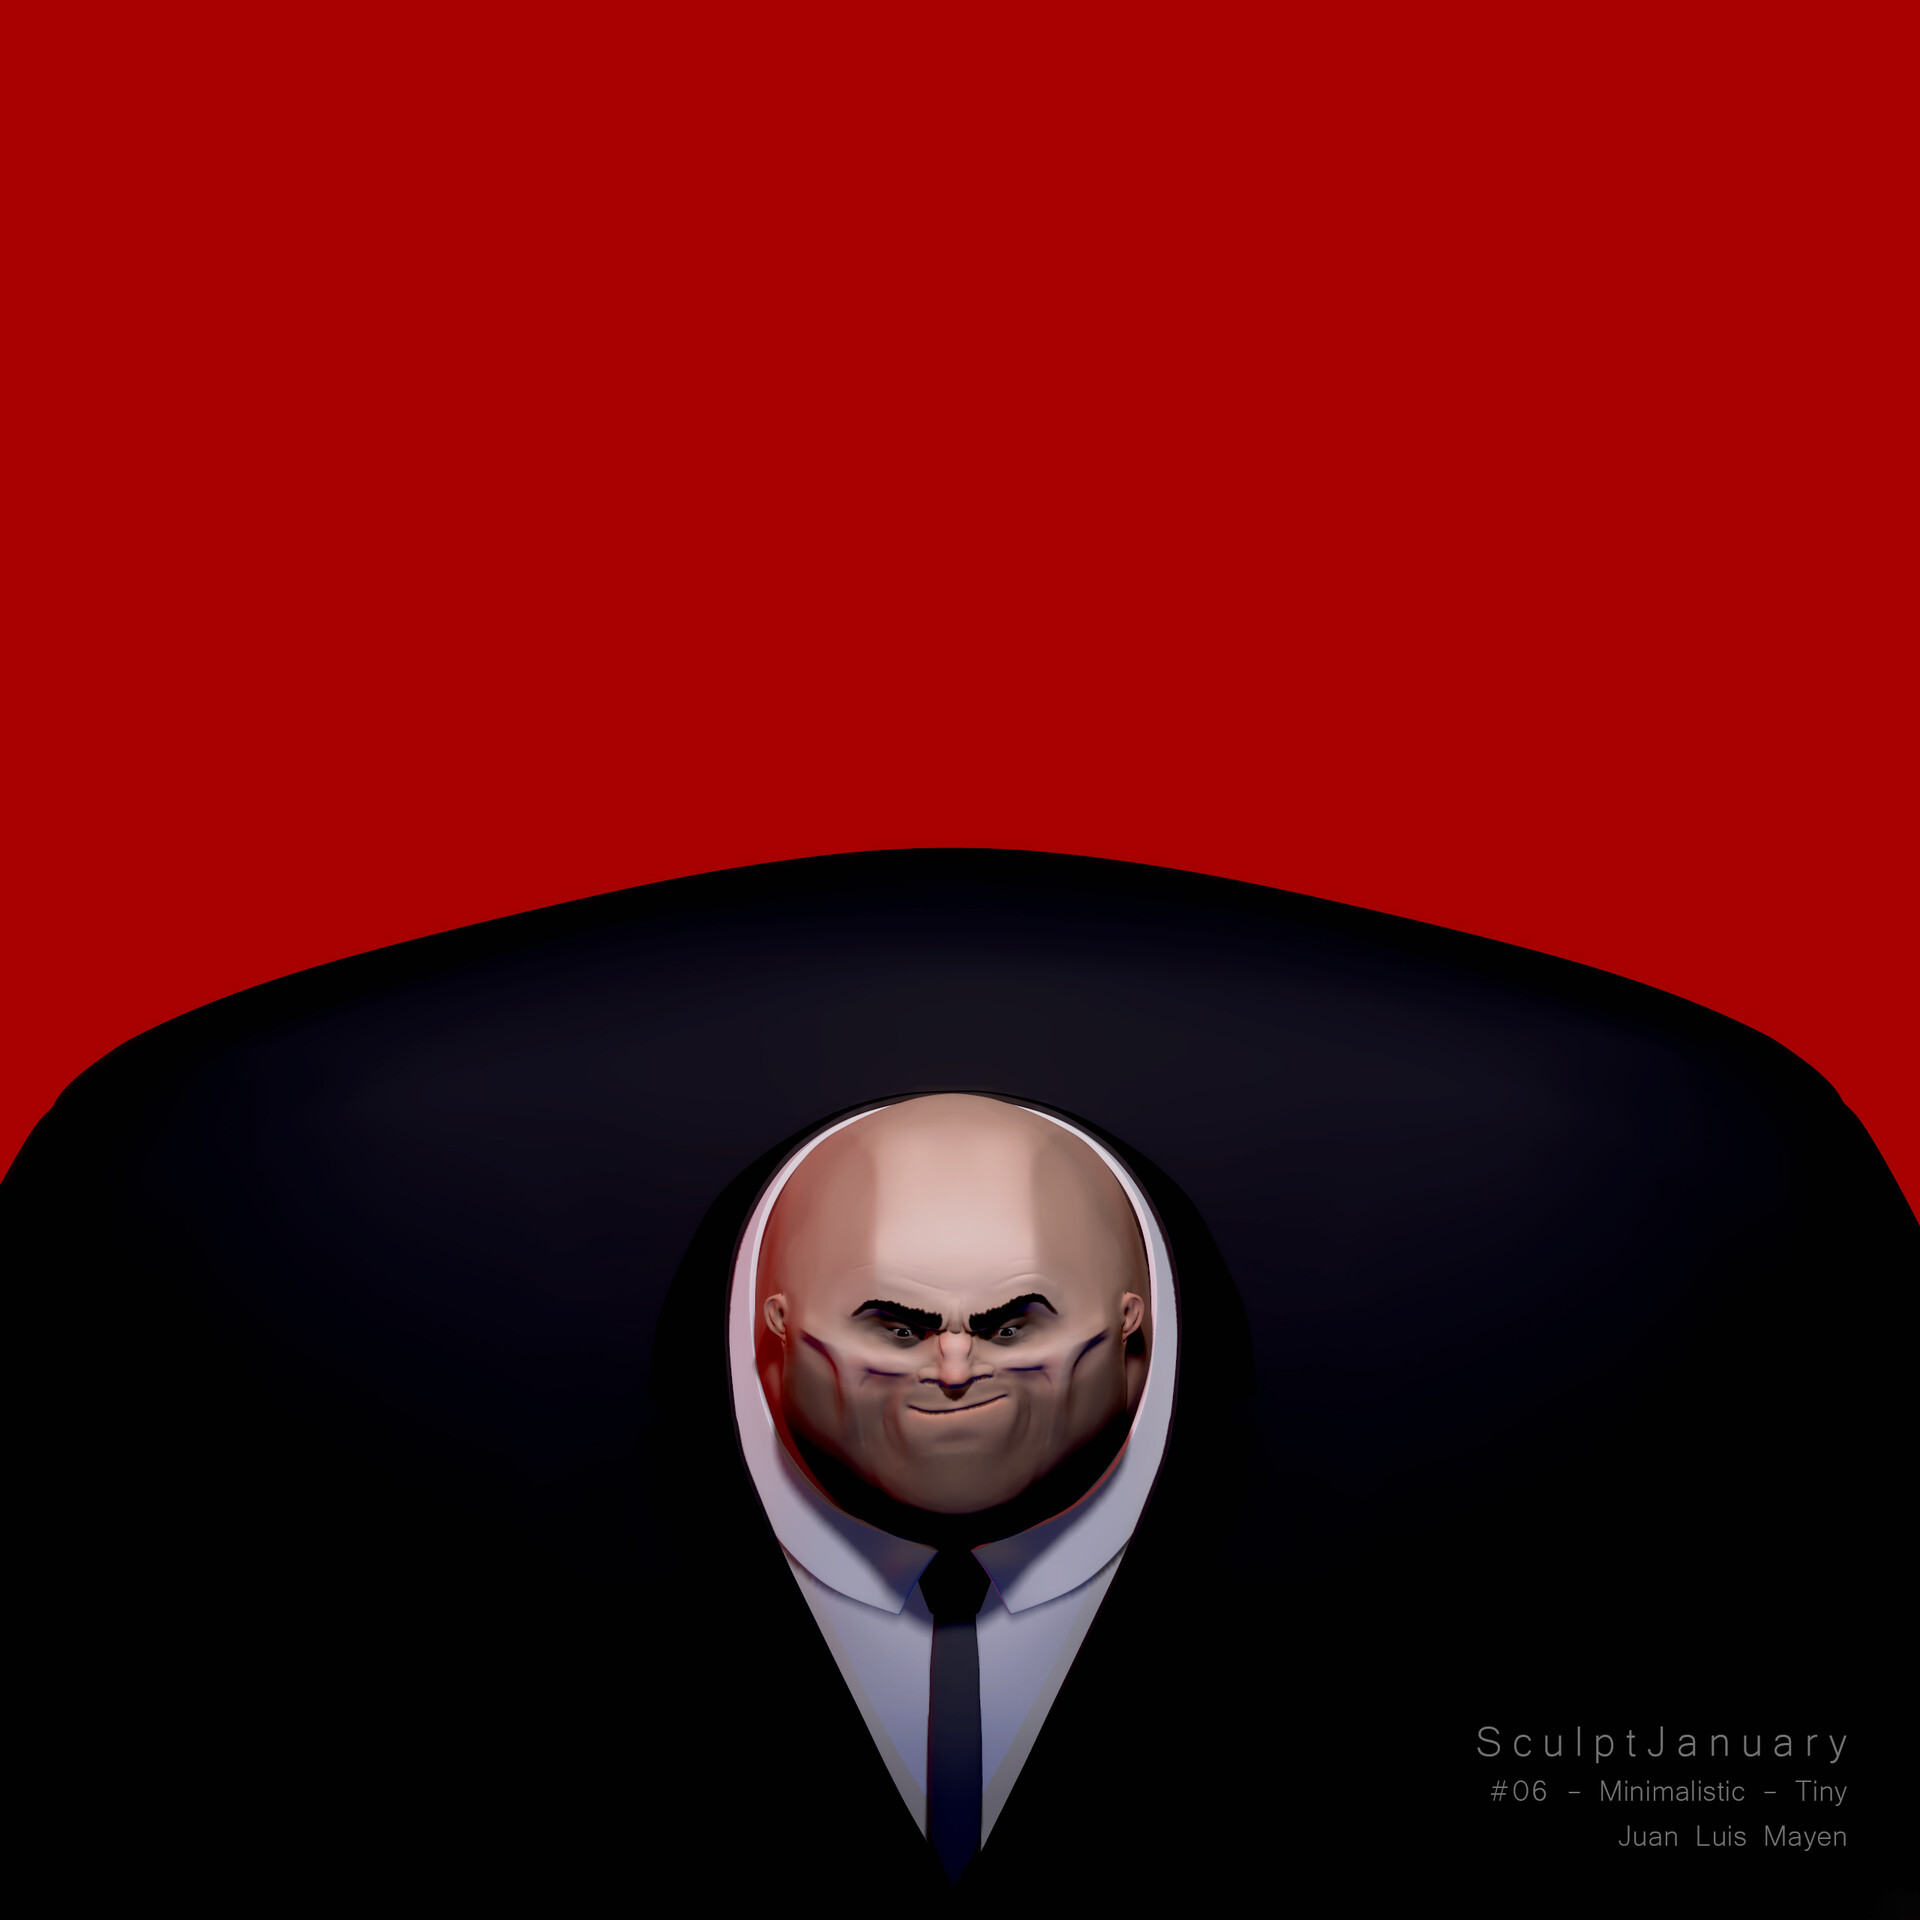 06 - Minimalistic - Tiny